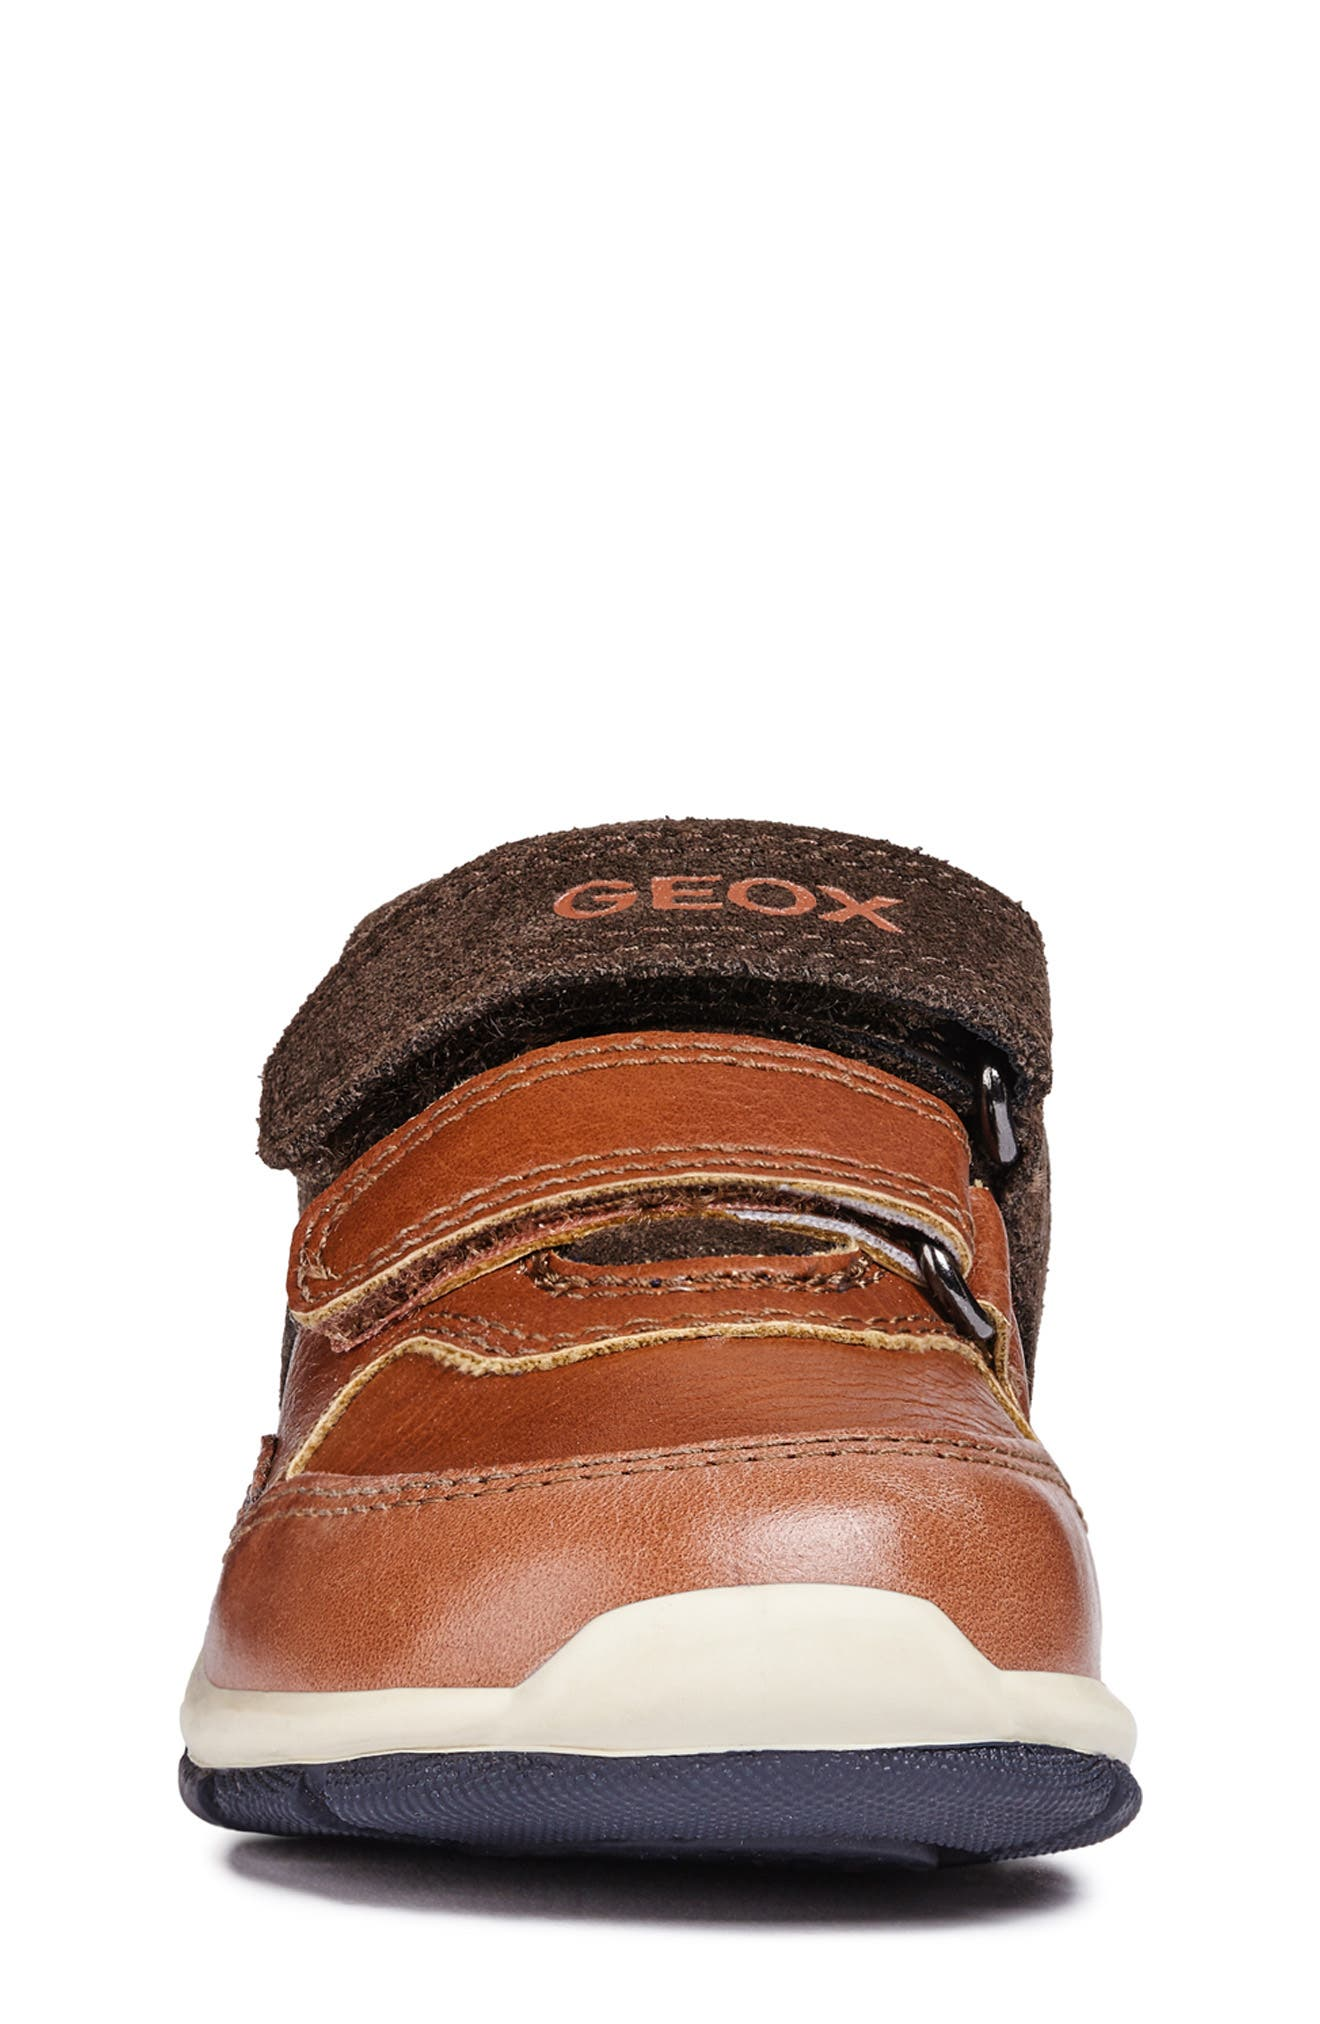 GEOX,                             Shaax Sneaker,                             Alternate thumbnail 4, color,                             200